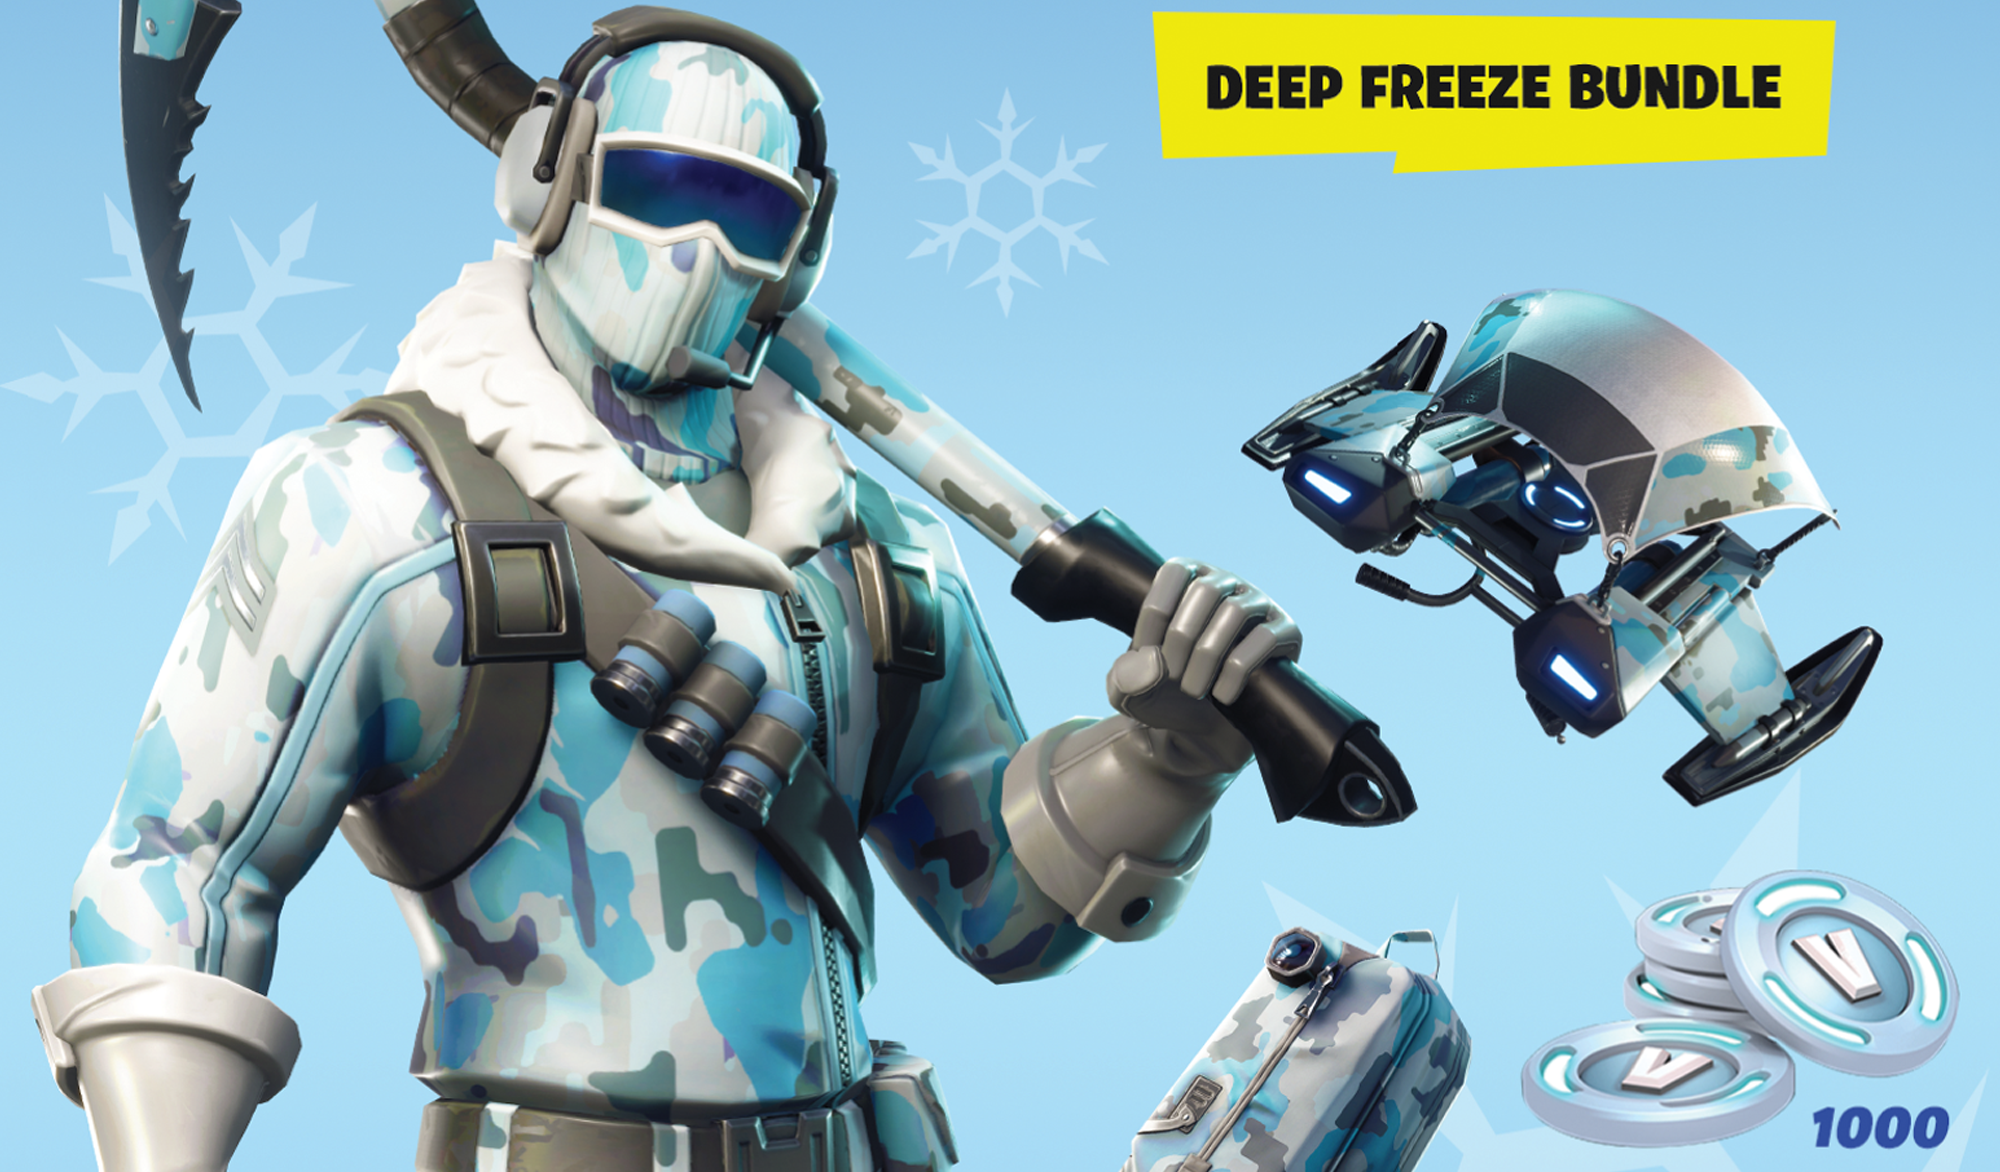 deep freeze bundle is already available for some fortnite players - fortnite save the world 20 euro